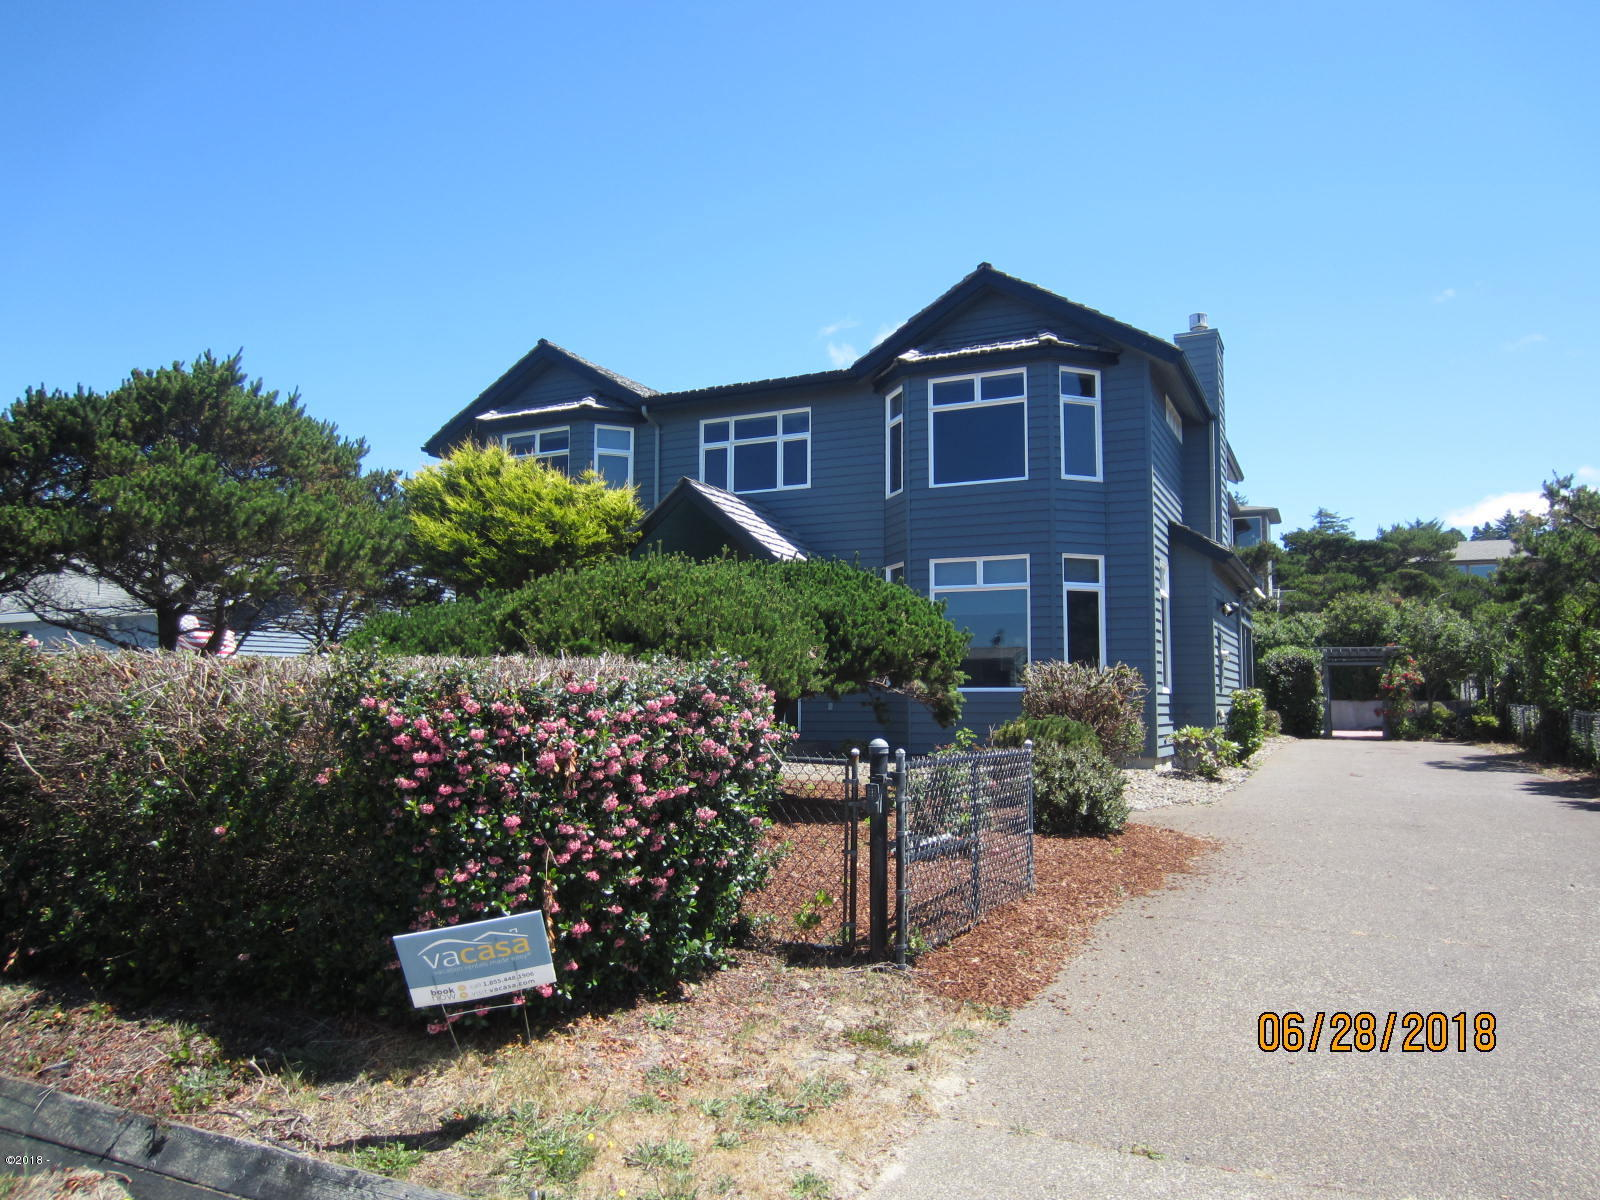 3105 NW Oceania Dr, Waldport, OR 97391 - front view